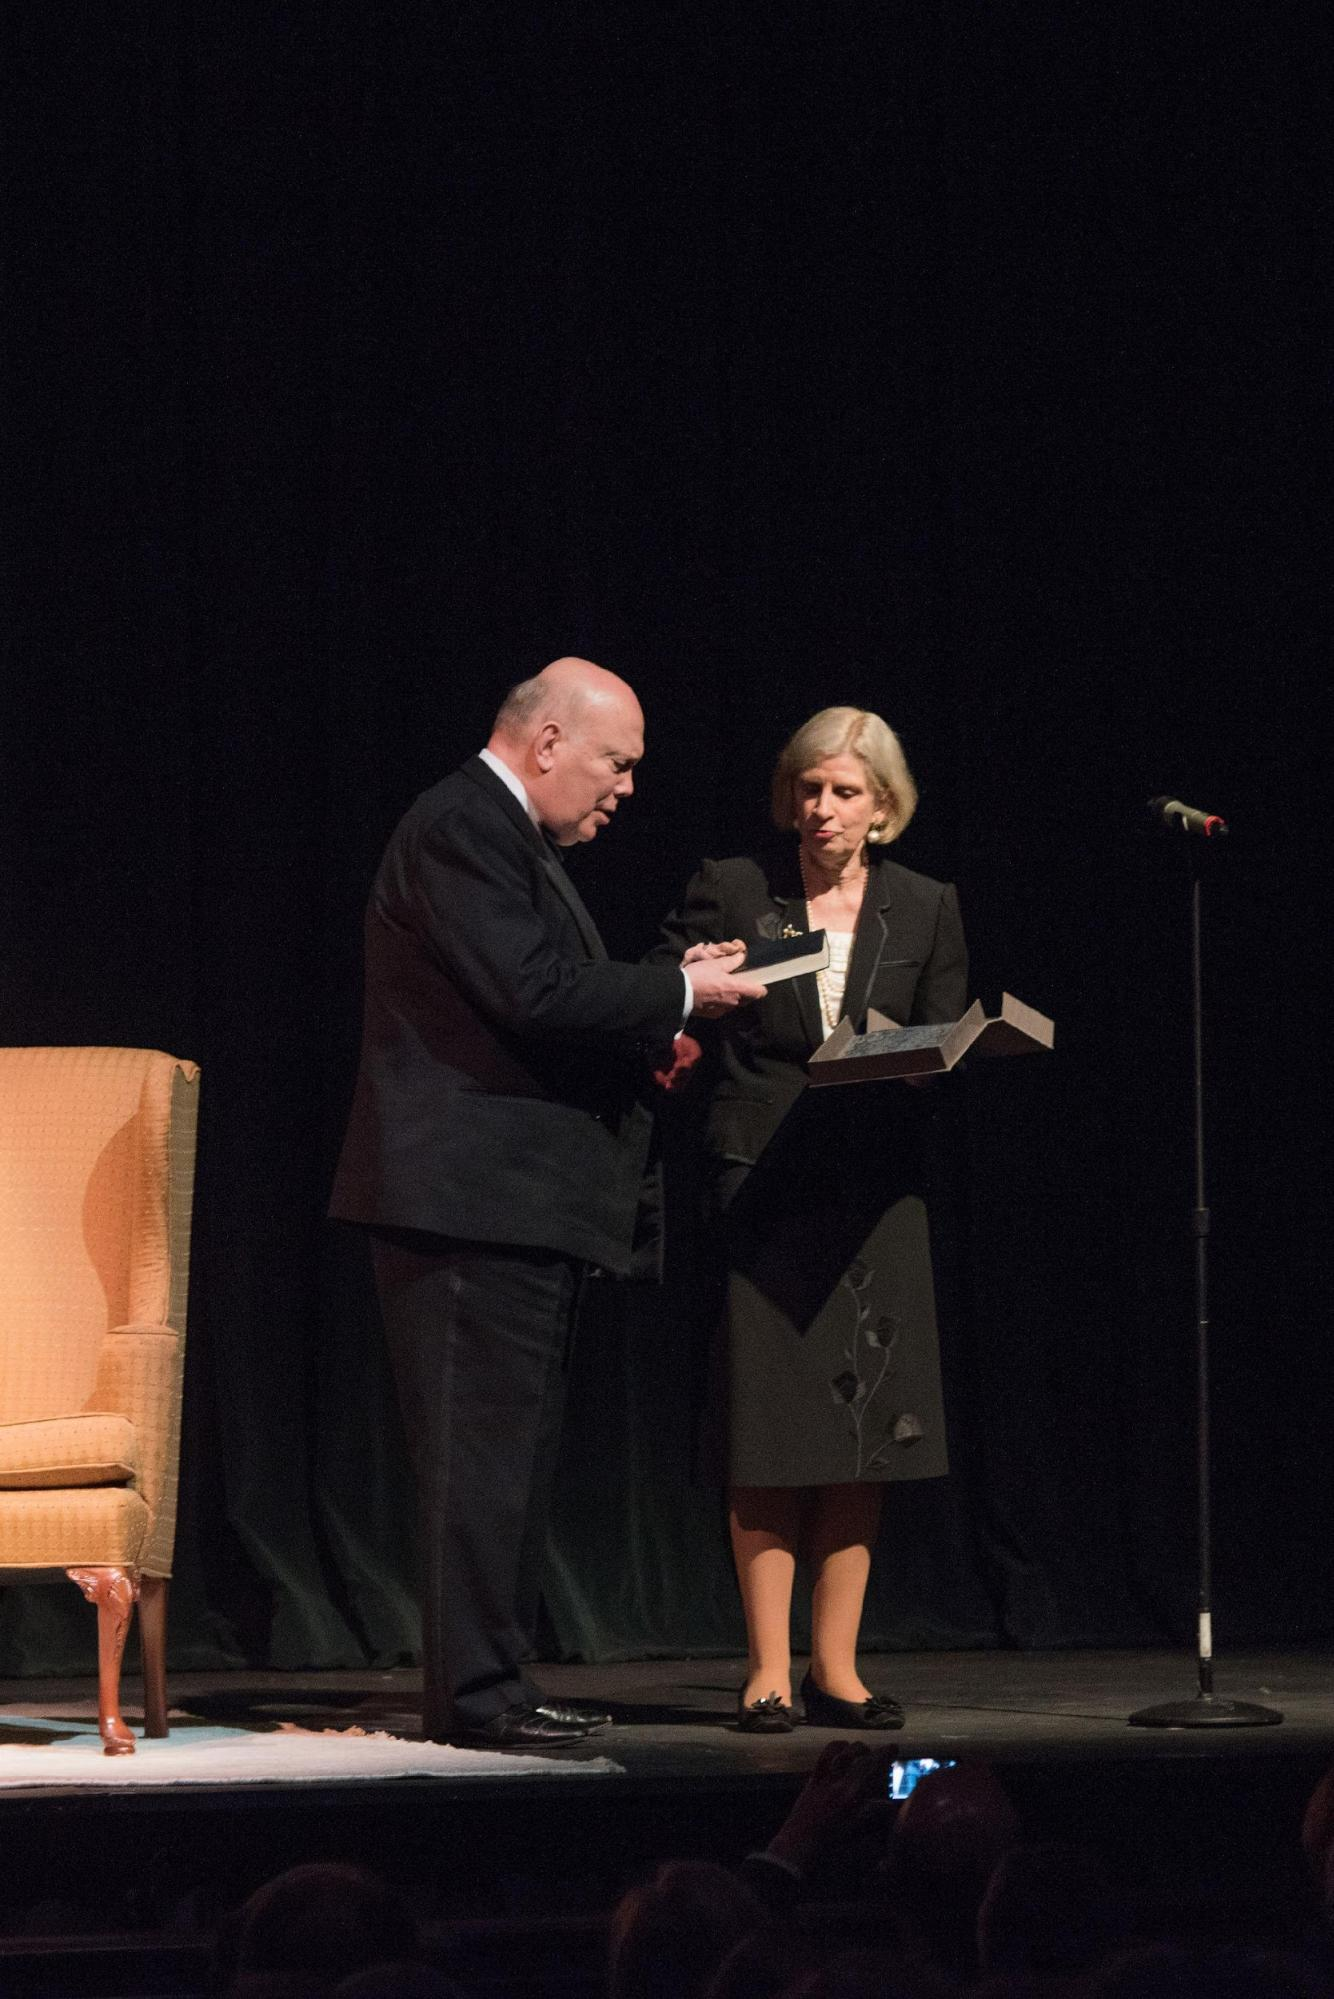 Charleston Library Society Anne Cleveland presents Lord Fellowes with a gift